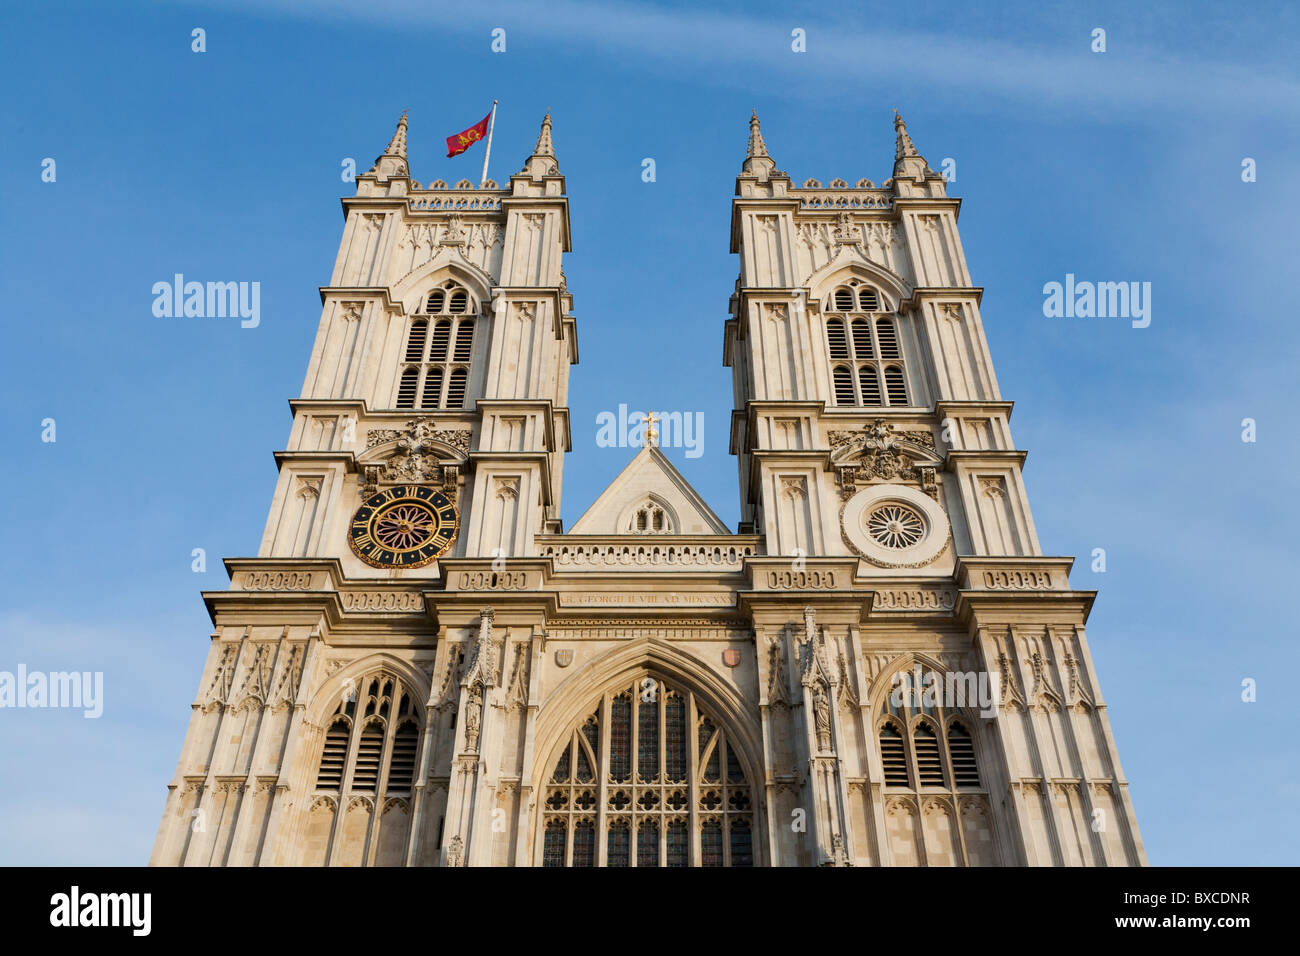 WEST DOOR, WESTMINSTER ABBEY, CORONATION CHURCH, LONDON, ENGLAND, GREAT BRITAIN - Stock Image